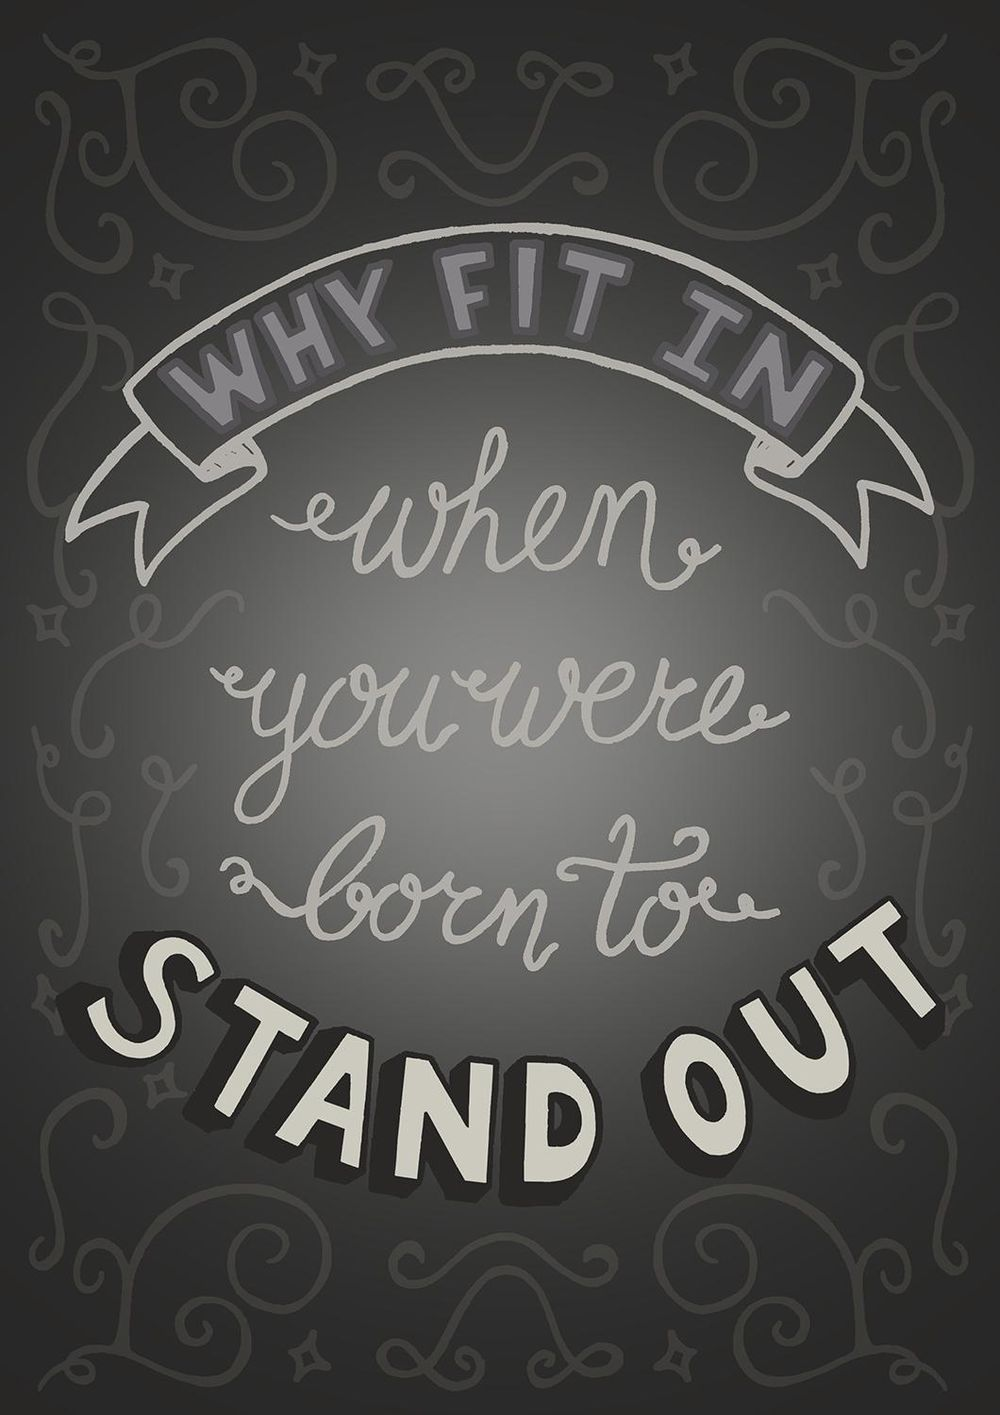 Why fit in when you were born to stand out - image 6 - student project